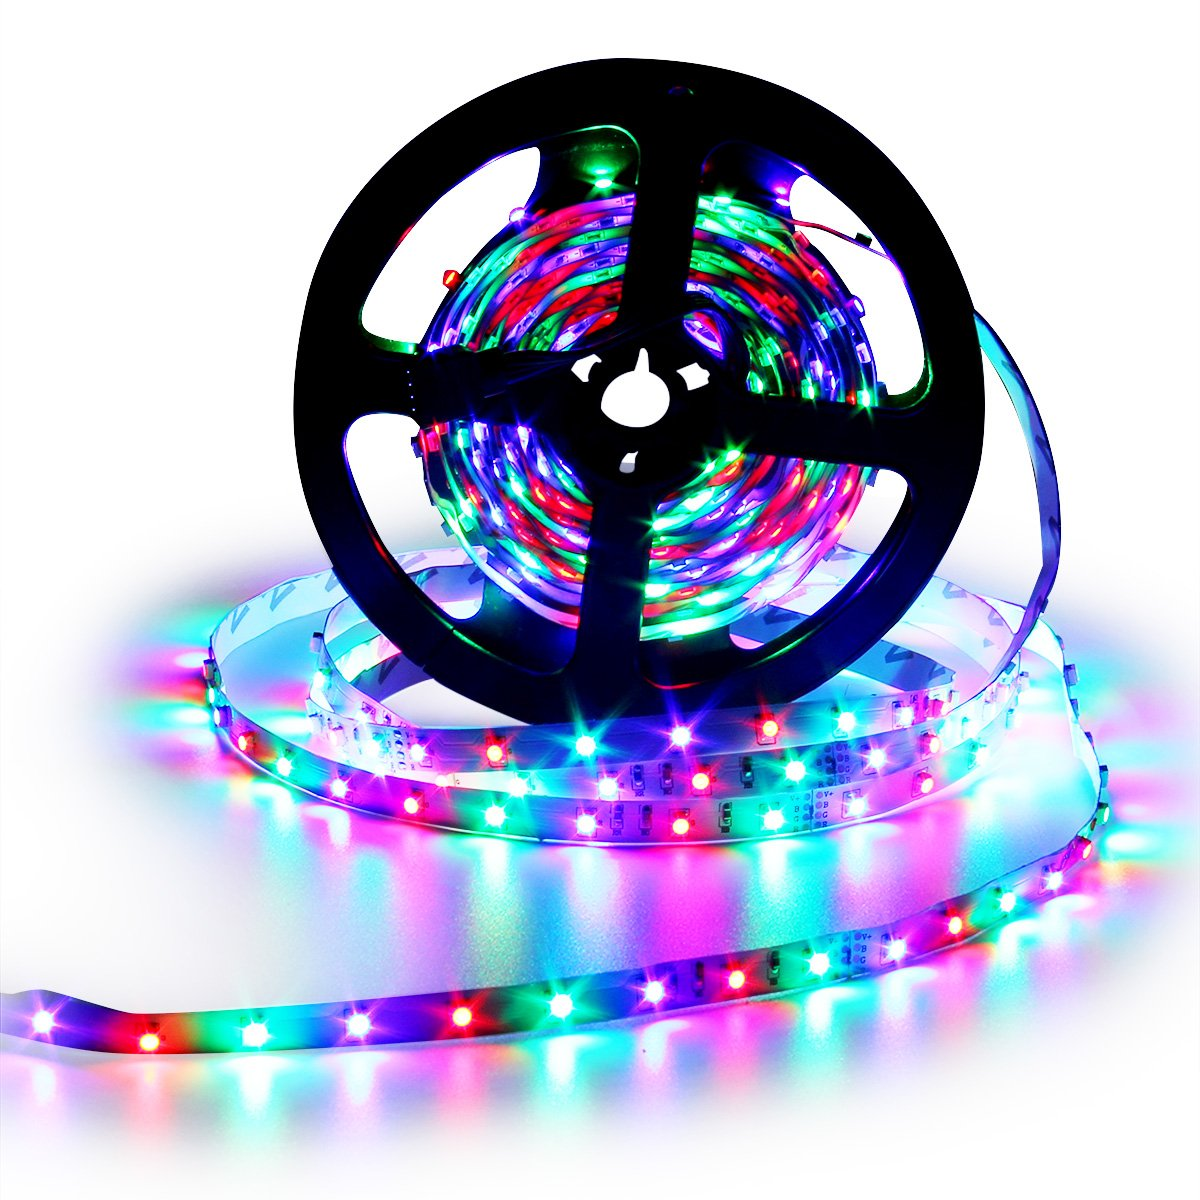 SUPERNIGHT RGB Strip Light 16.4ft 300leds SMD 3528 Color Changing Rope Lights Flexible Multi Colors Non Waterproof No Power Adapter